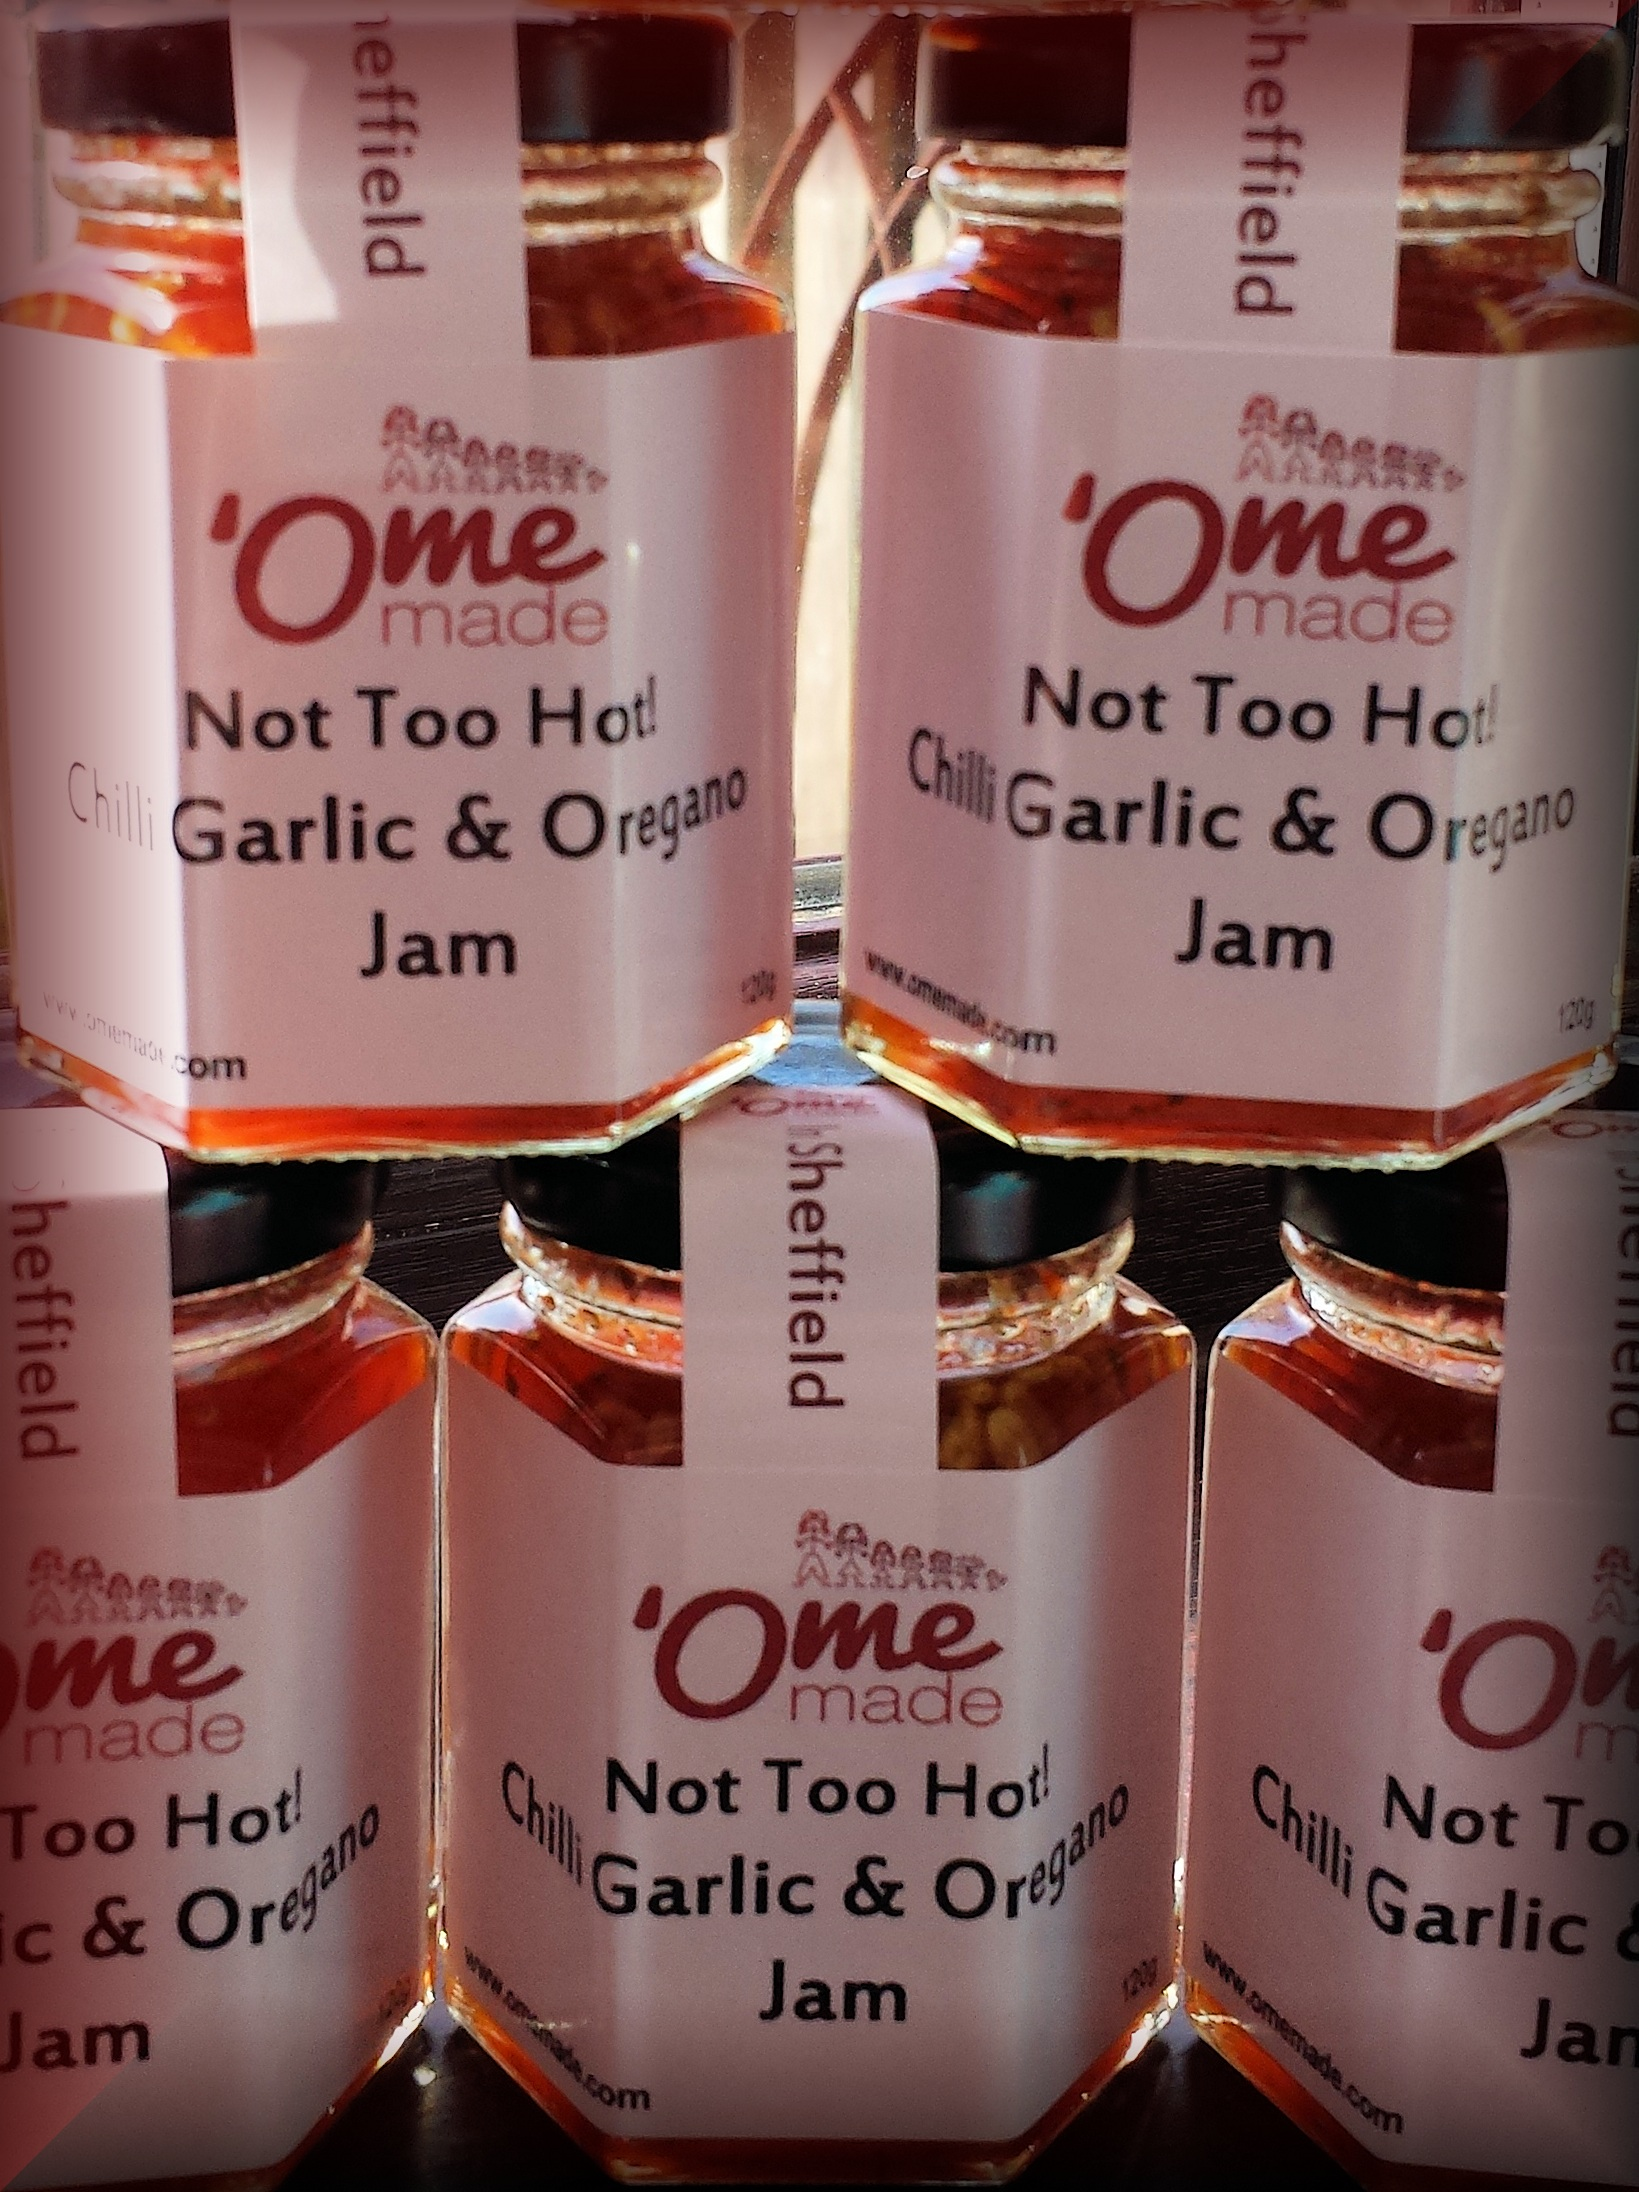 chilli garlic and oregano jam